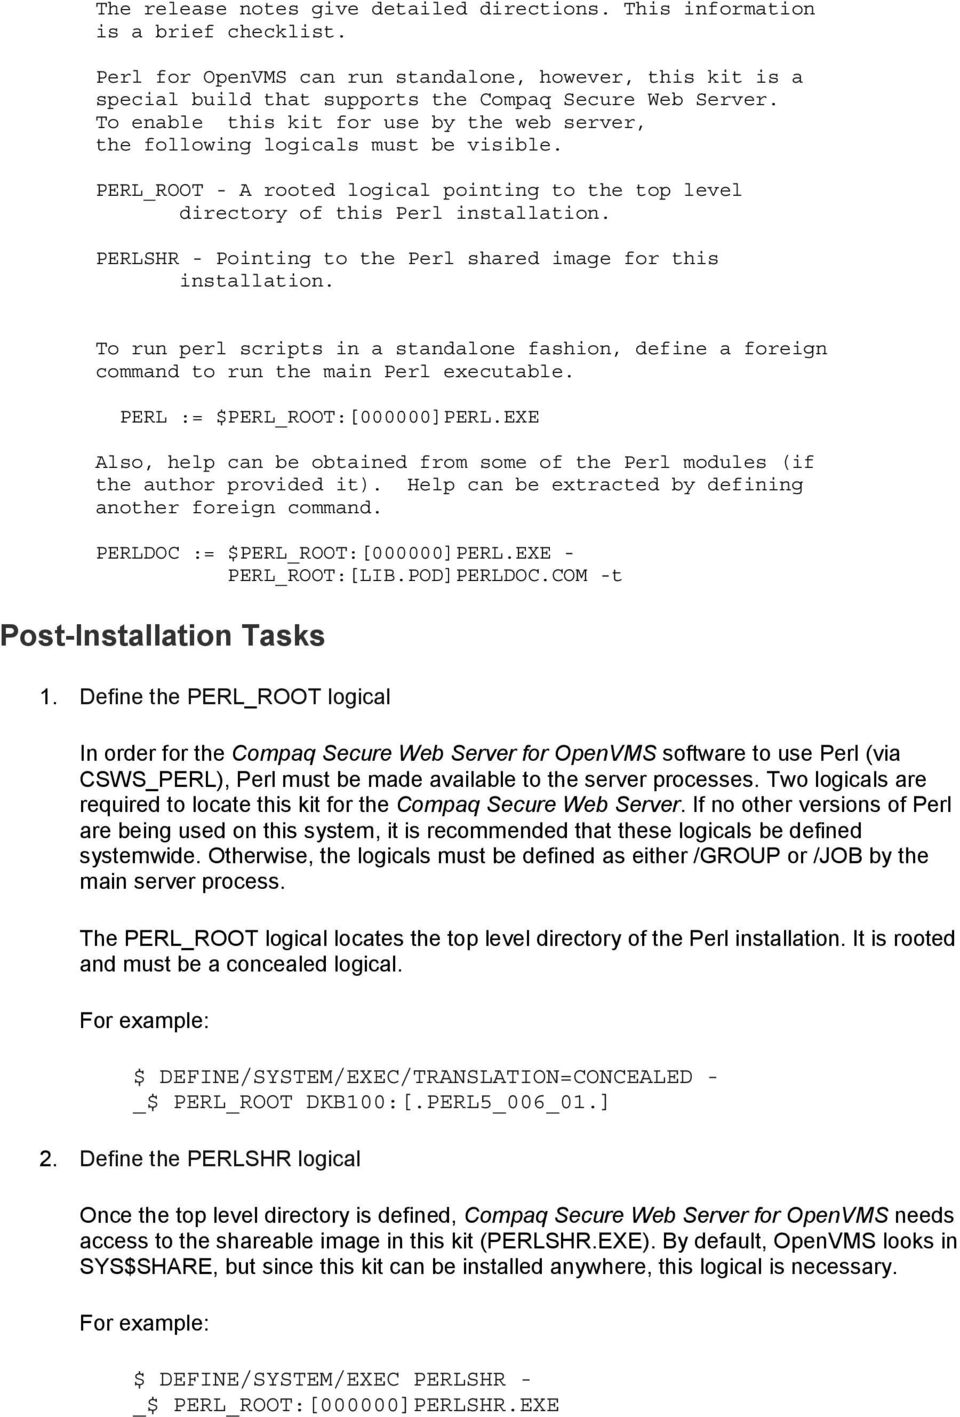 PERLSHR - Pinting t the Perl shared image fr this installatin. T run perl scripts in a standalne fashin, define a freign cmmand t run the main Perl executable. PERL := $PERL_ROOT:[000000]PERL.